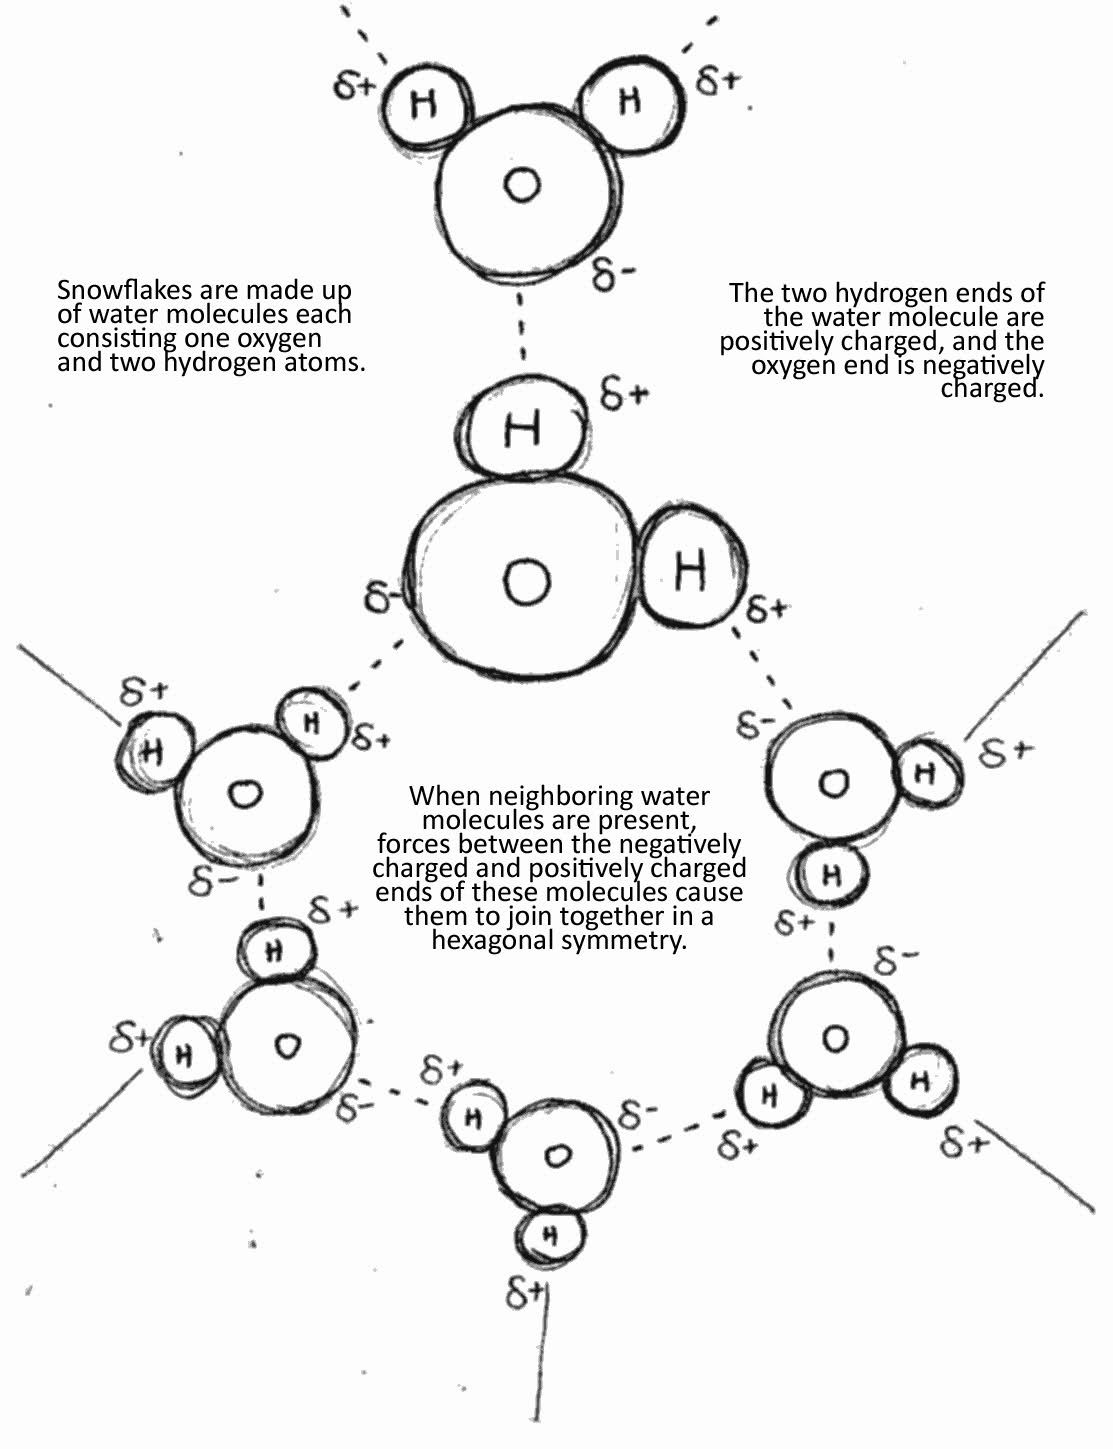 hight resolution of crystal structure of snowflakes formed from hydrogen bonds between the water molecules